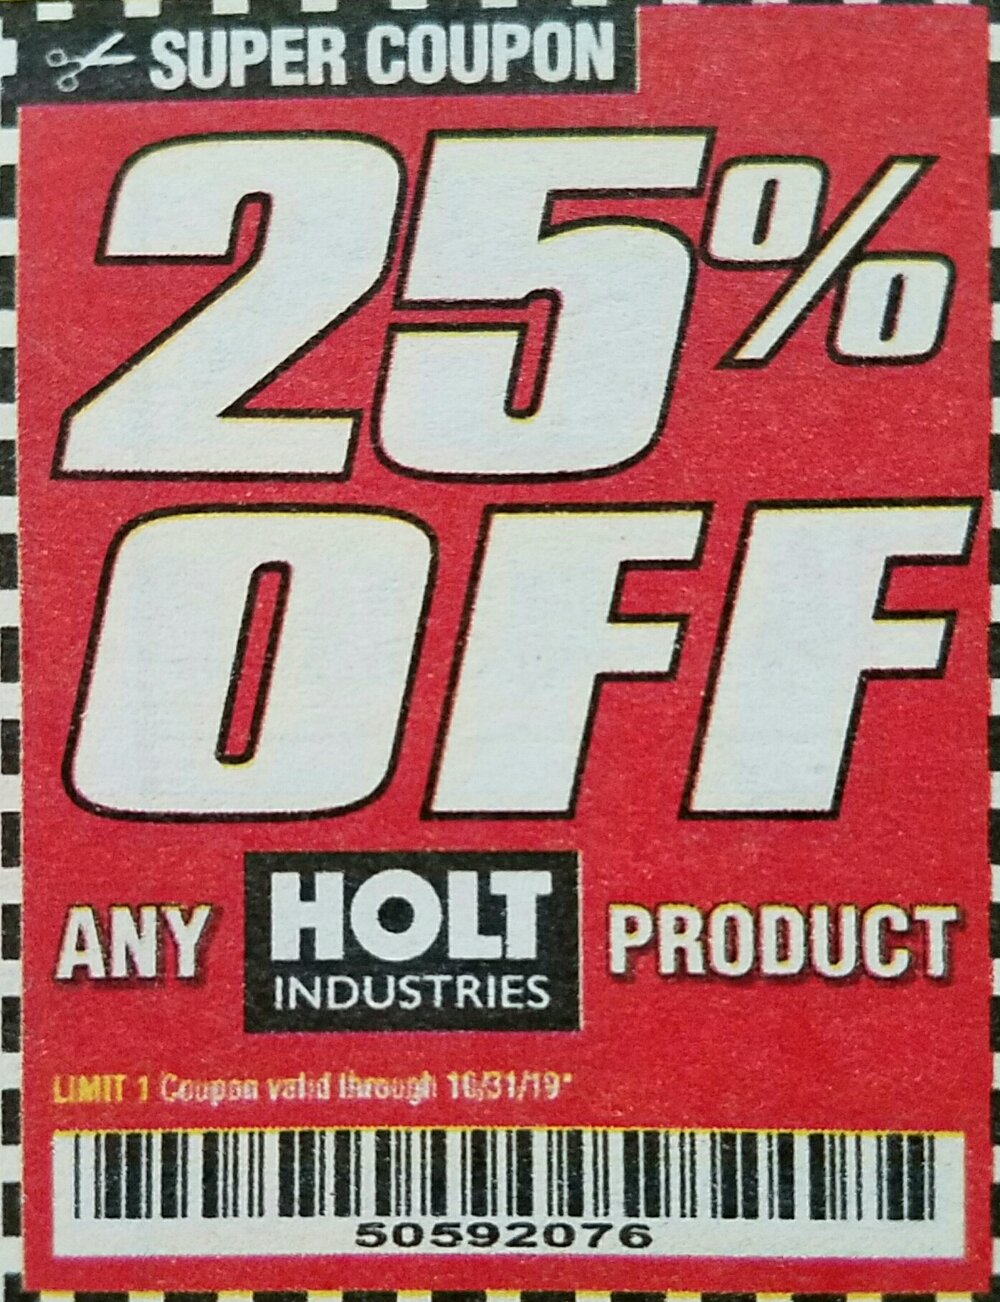 Harbor Freight Coupon, HF Coupons - 25% off any HOLT INDUSTRIES product